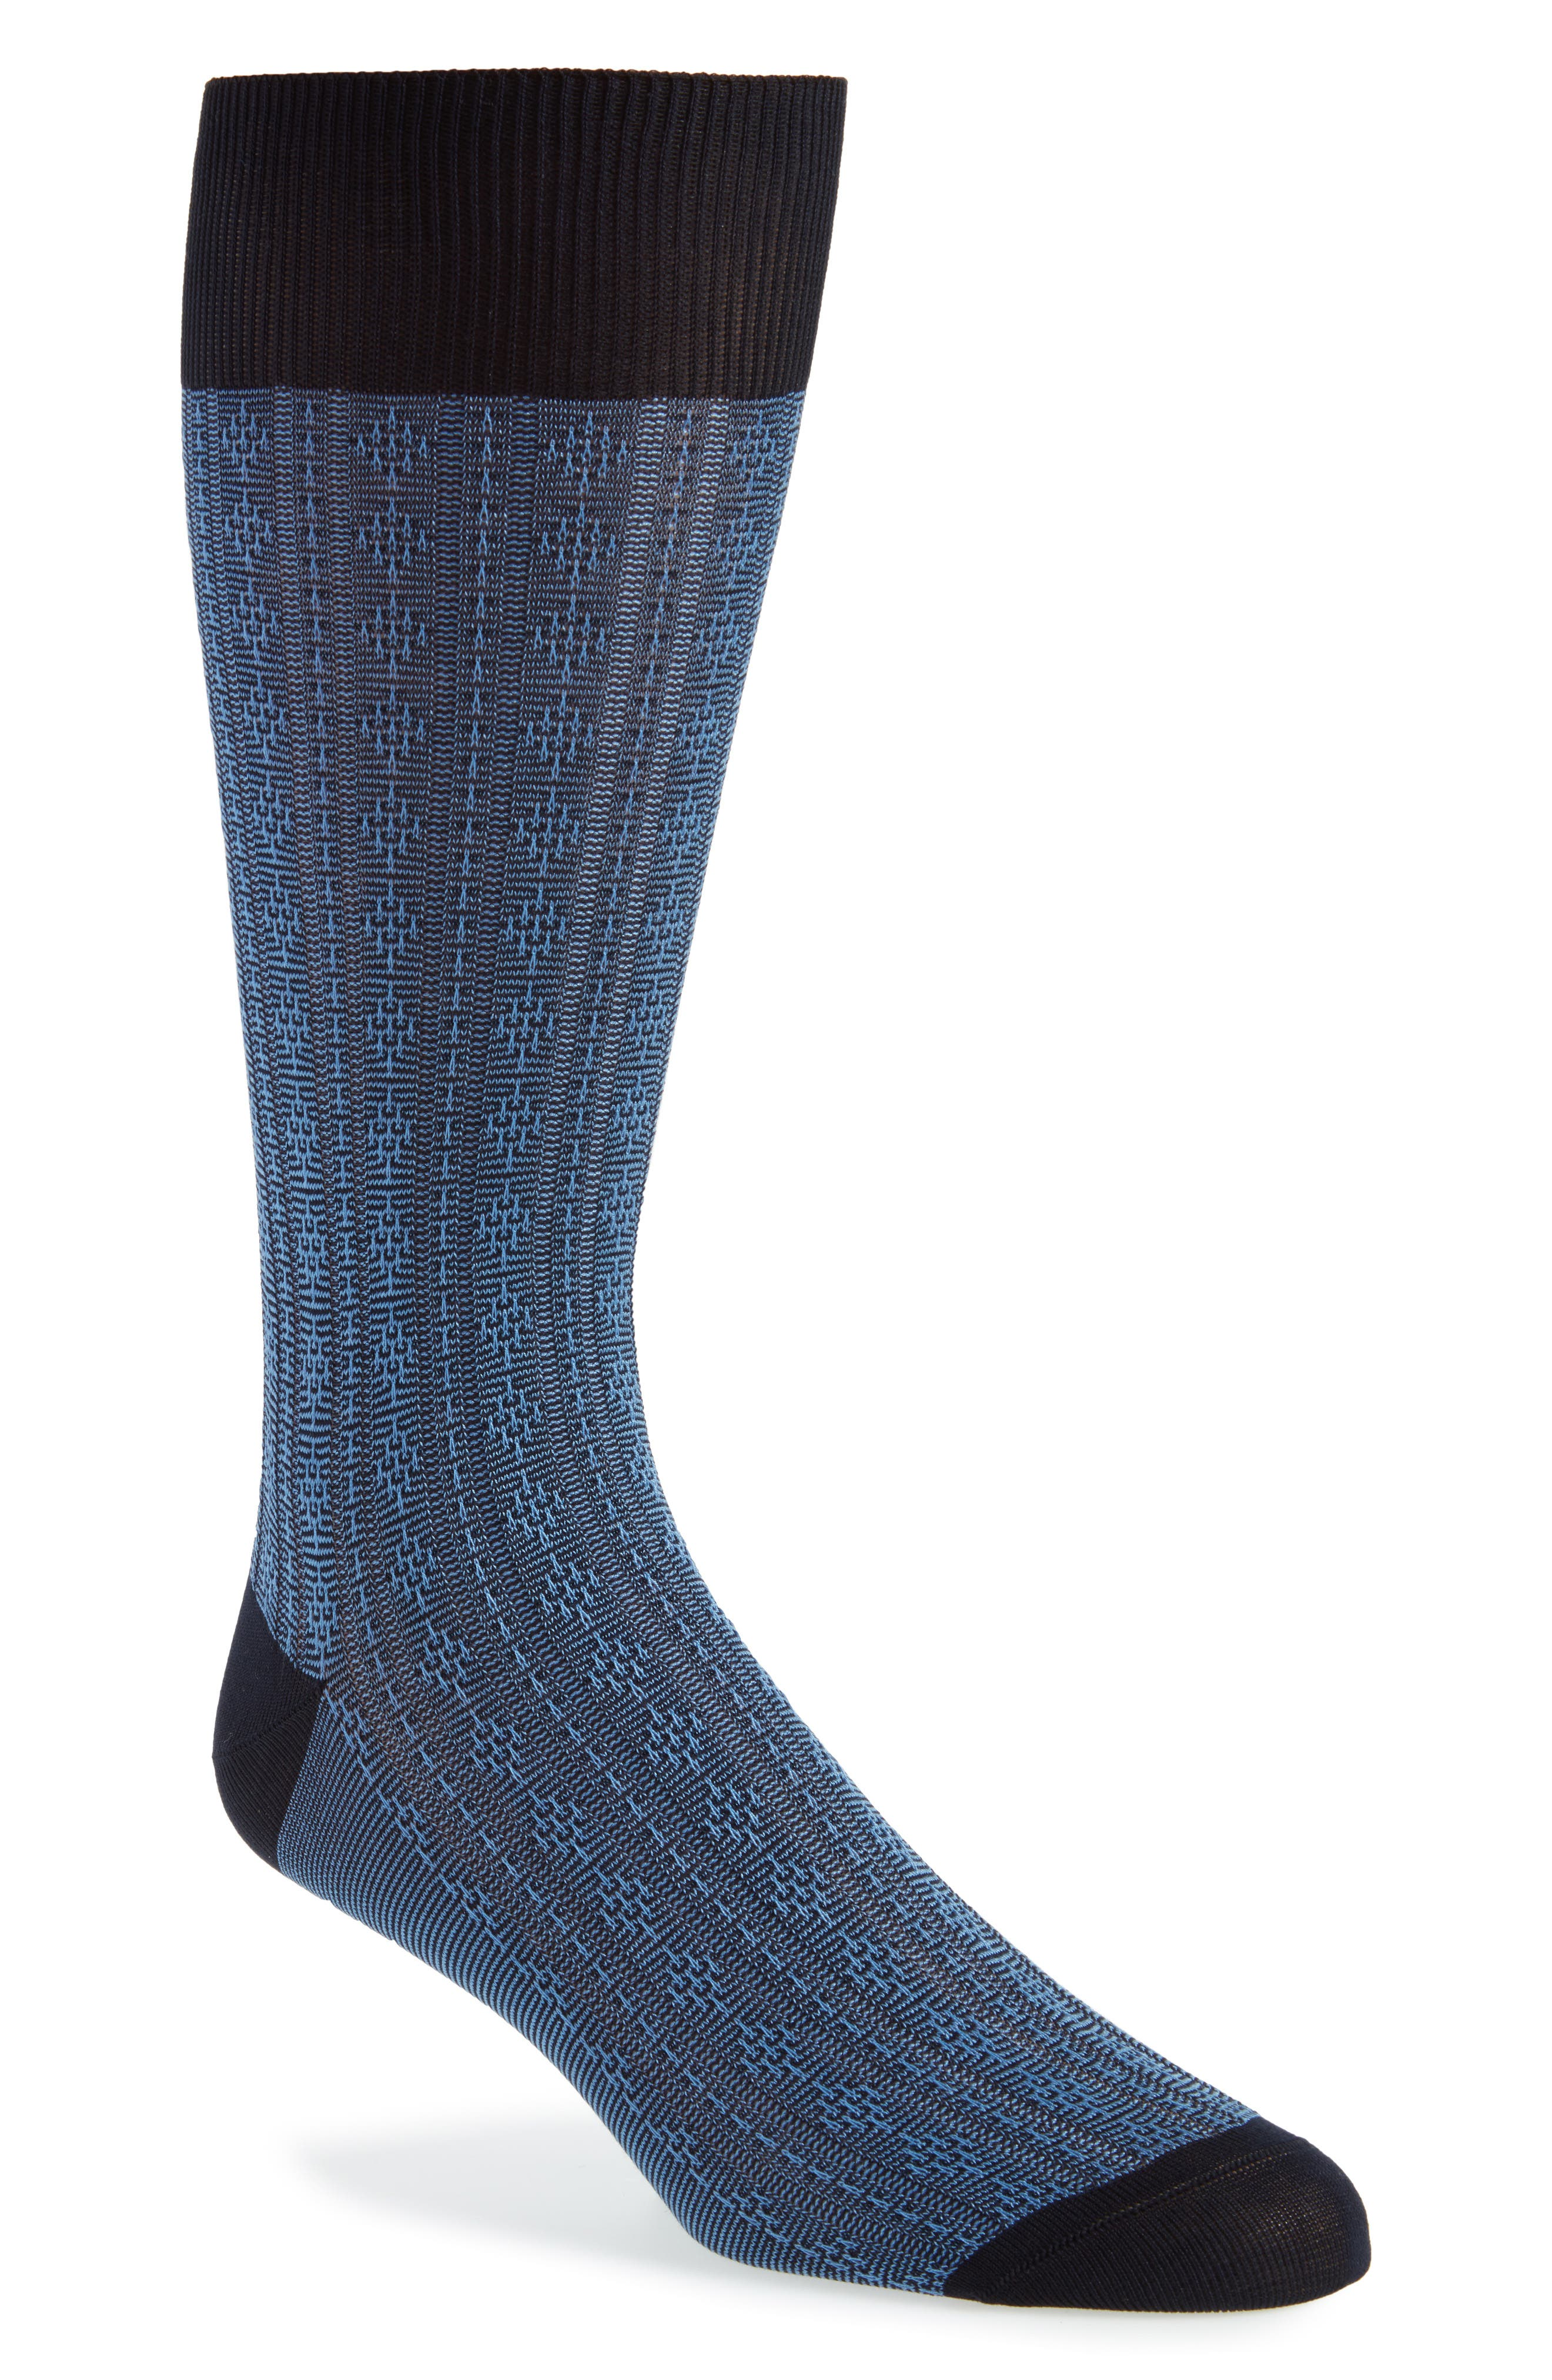 Atom Stitch Socks,                         Main,                         color, Navy